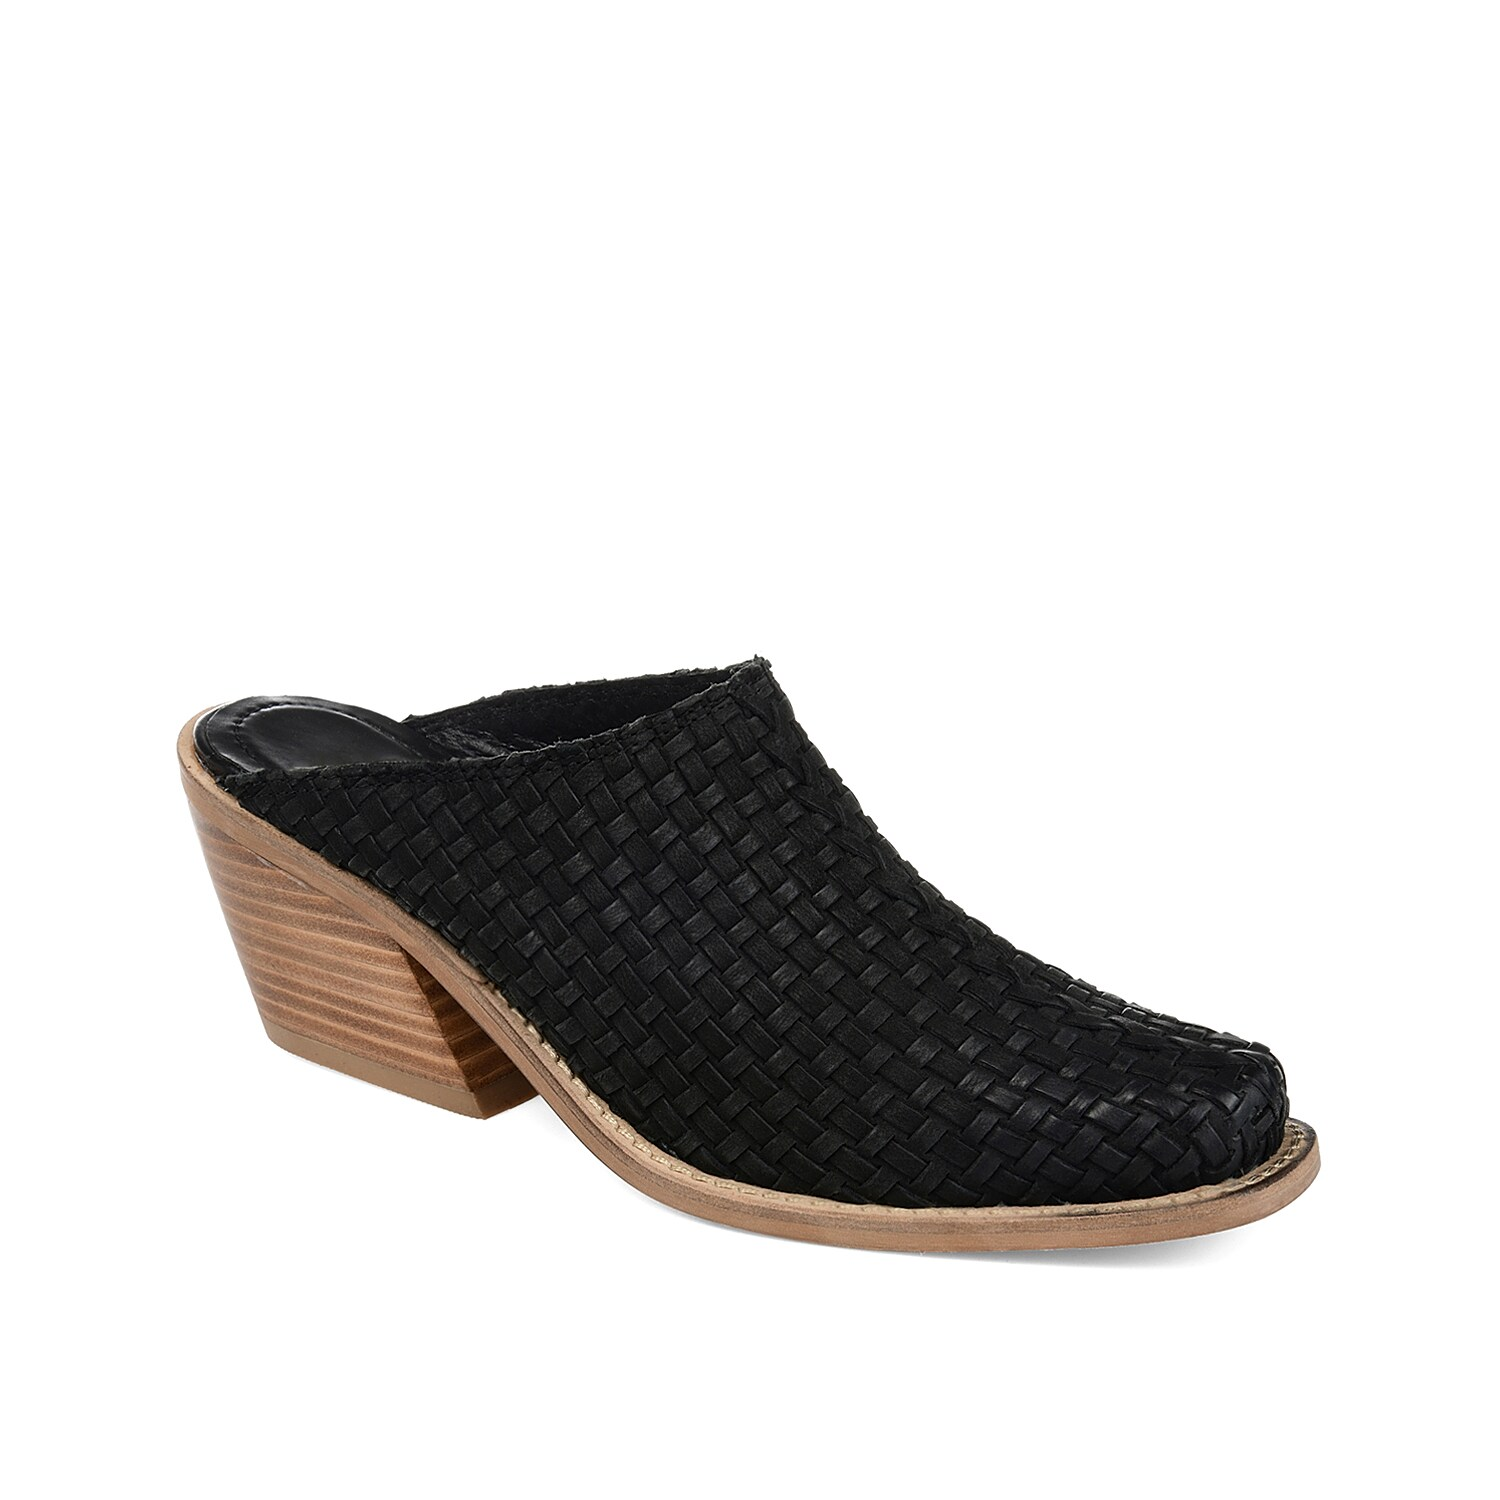 Feel sleek and stylish when wearing the Quinn mule from Journee Signature. The backless styling and leather, woven upper will go great with boyfriend jeans and a tucked-in top!